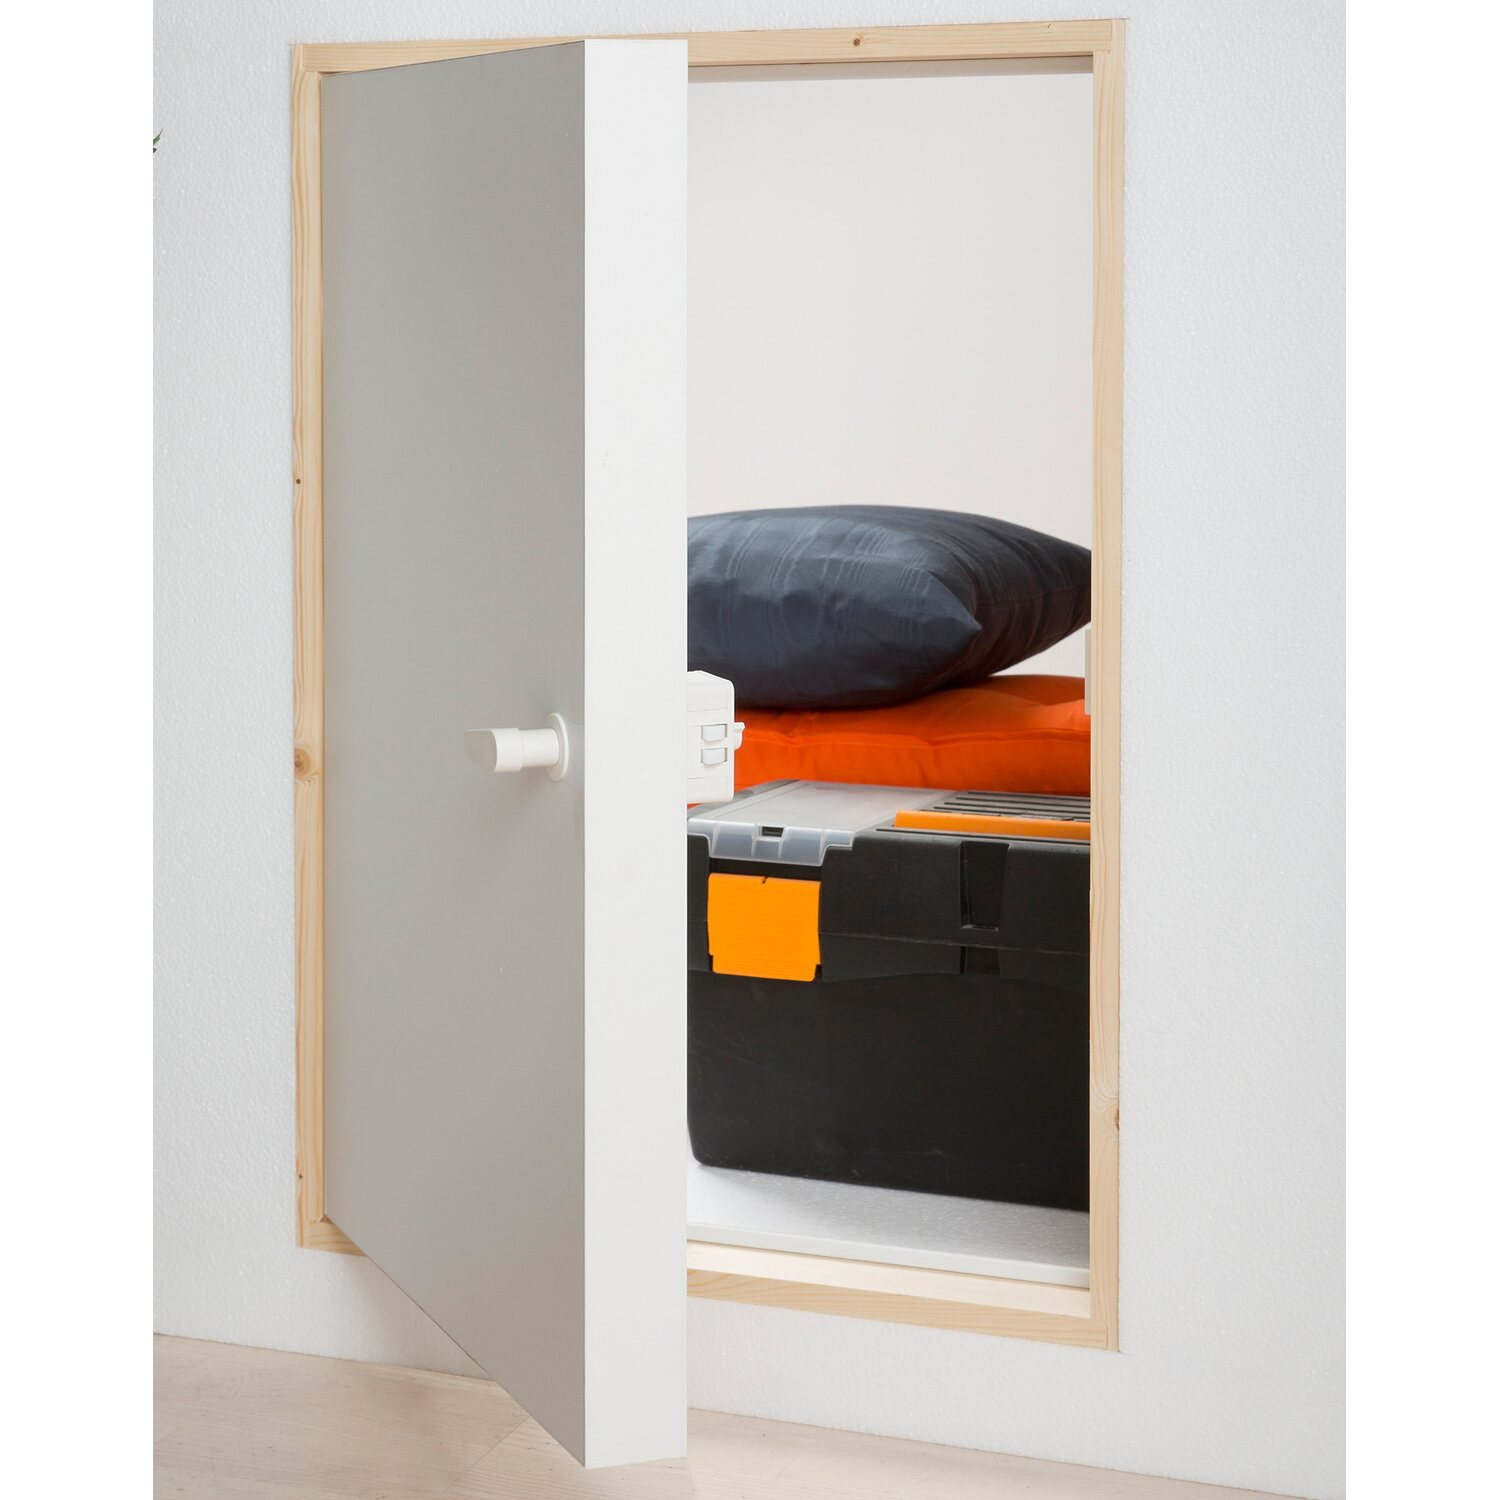 dolle kniestockt r mit w rmed mmung 80 cm x 70 cm x 11 5 cm kaufen bei obi. Black Bedroom Furniture Sets. Home Design Ideas